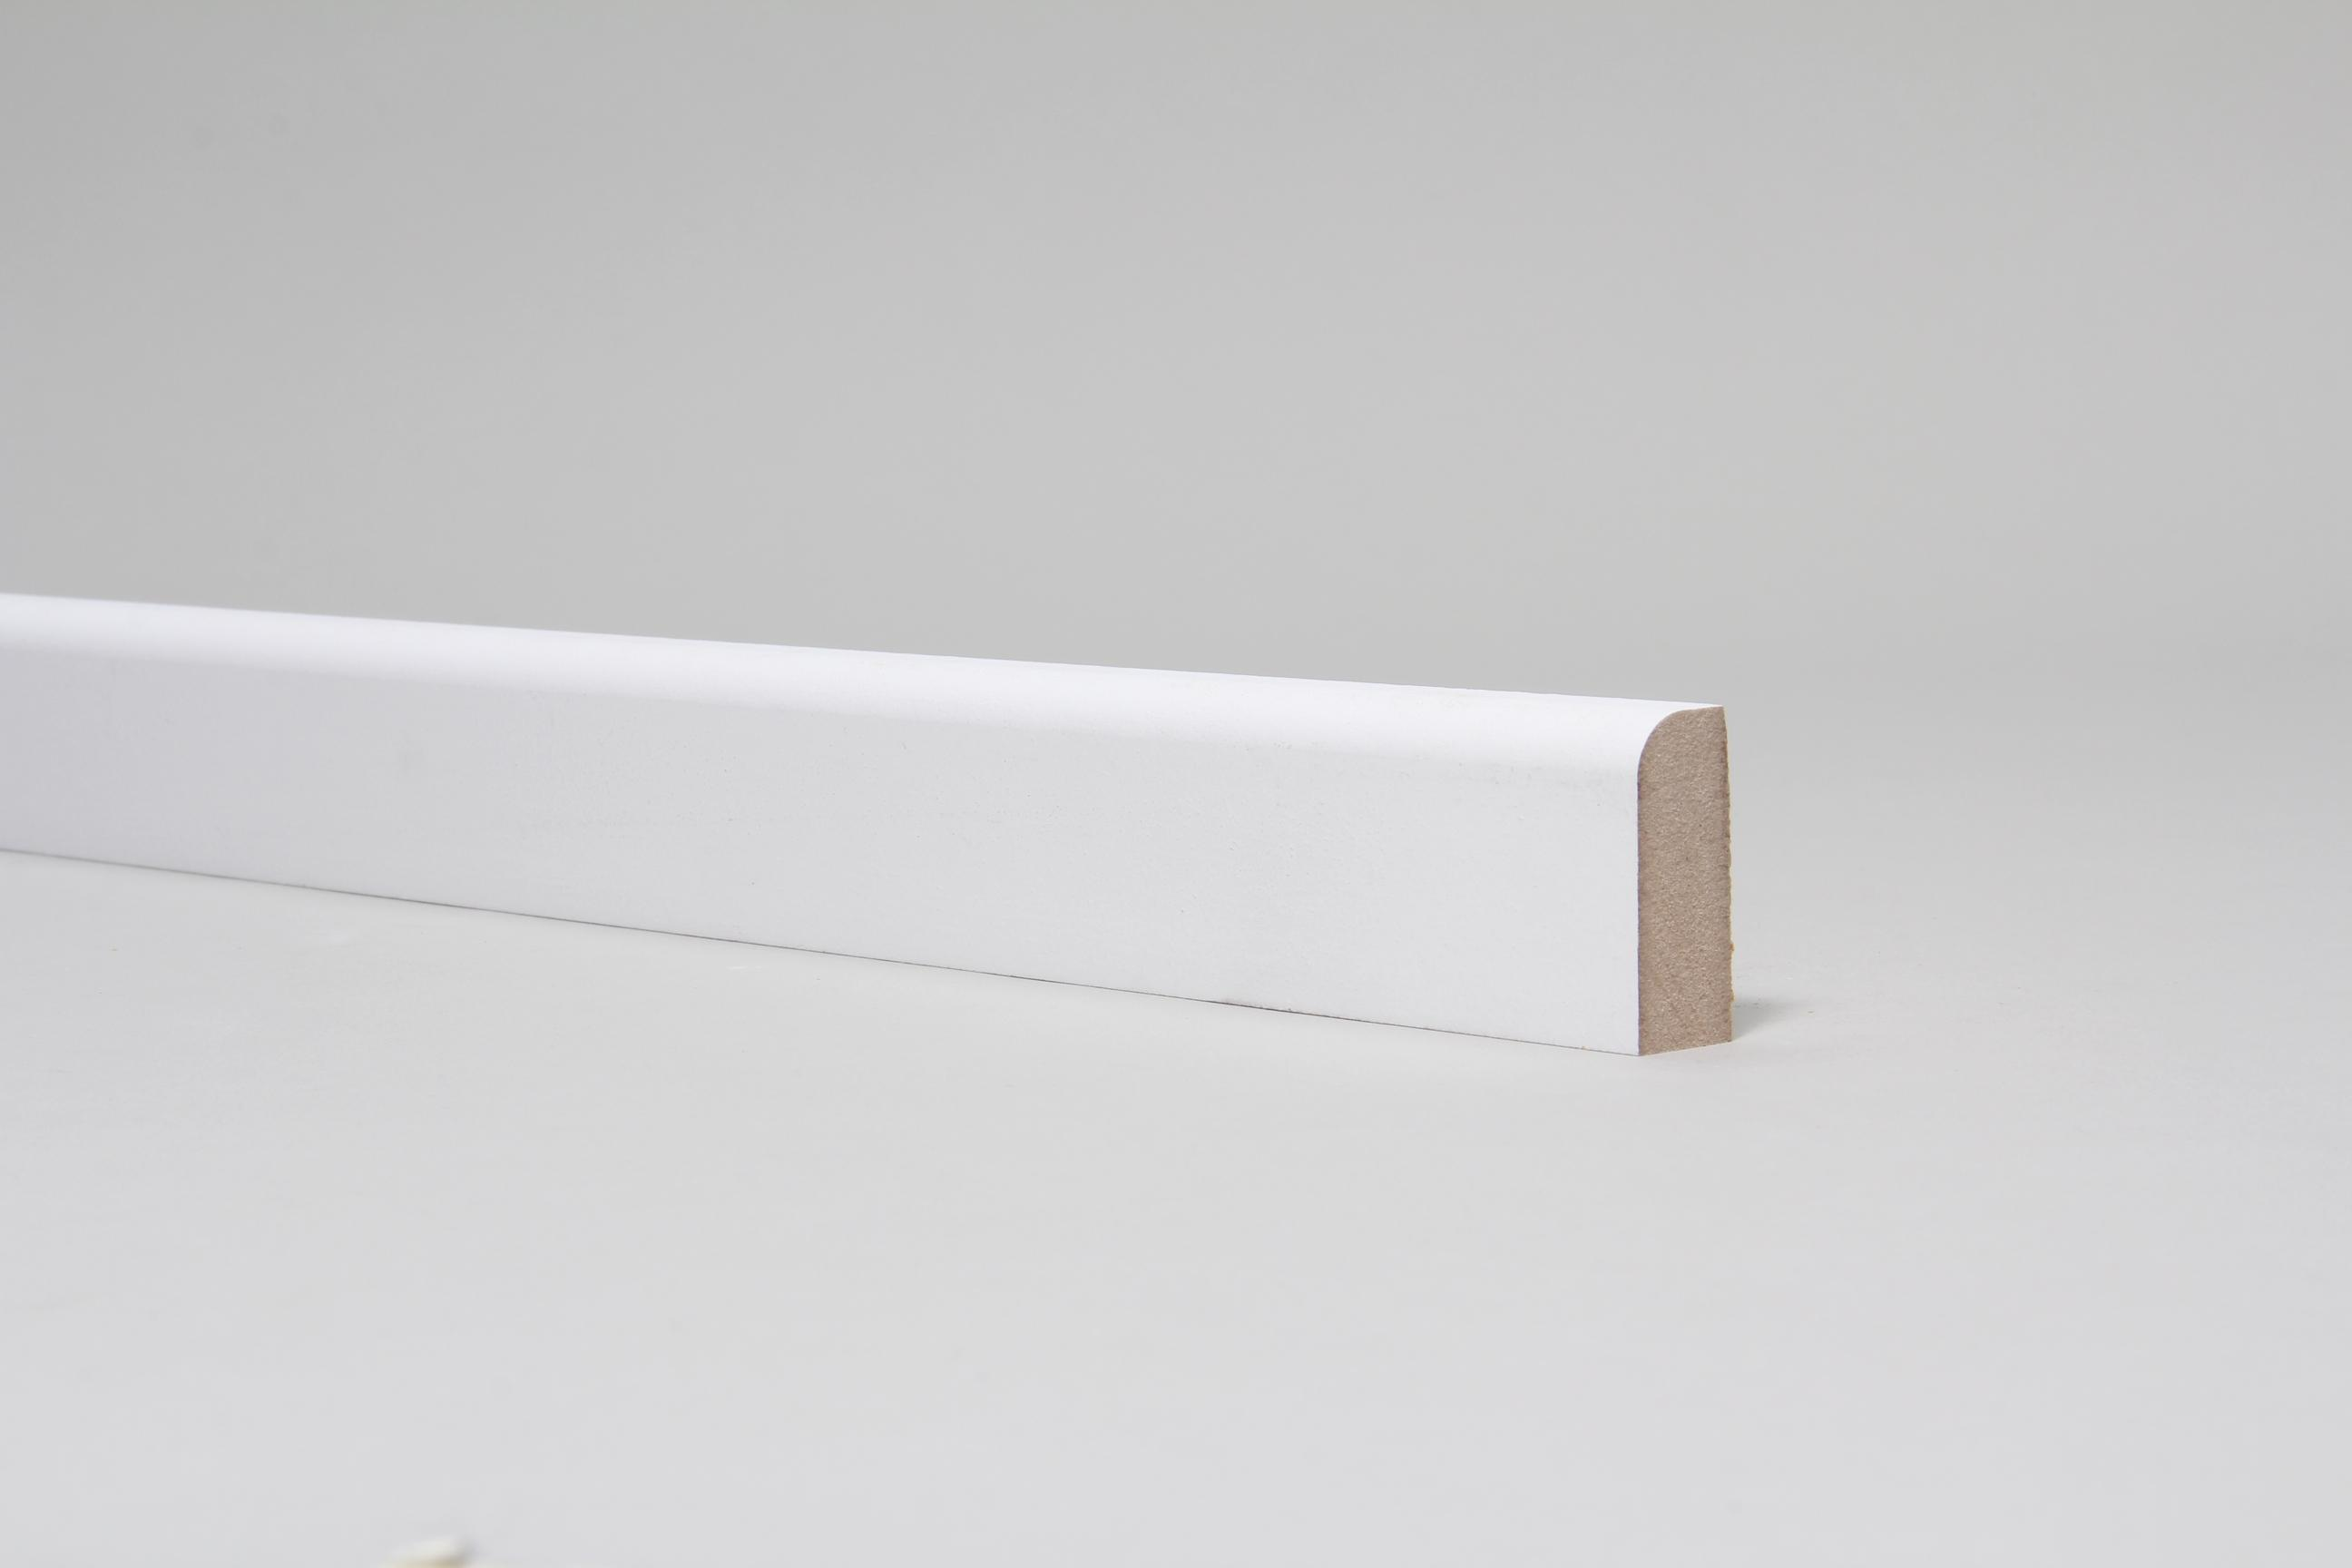 Rounded One Edge 18mm x 44mm x 4.4 Mtr Primed